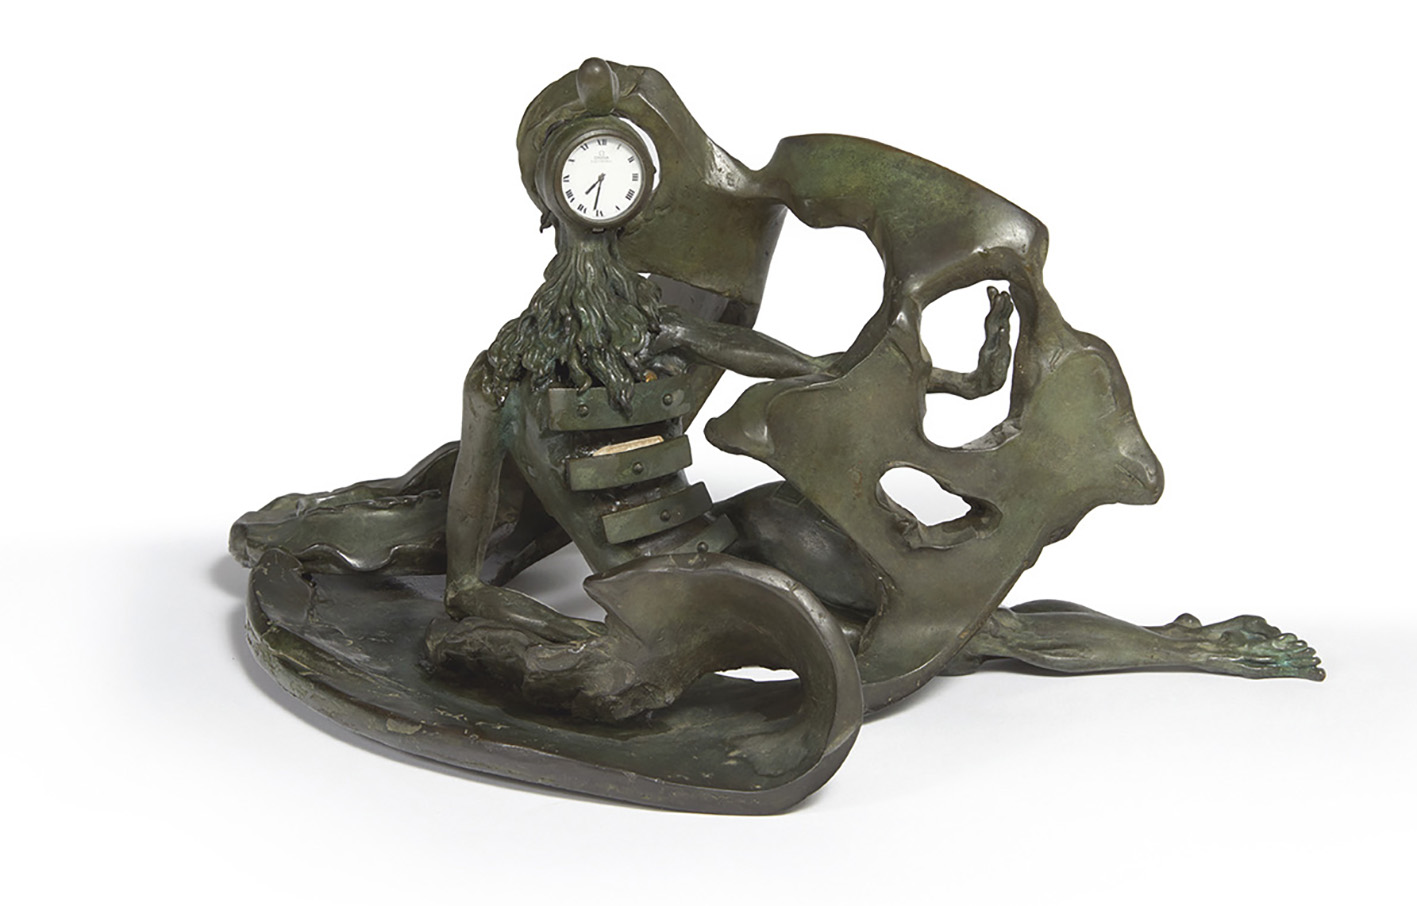 Salvador Dalí (1904-1989), La Prémonition des tiroirs (The Premonition of the Drawers), 1973, bronze with green patina, signed artist's pr